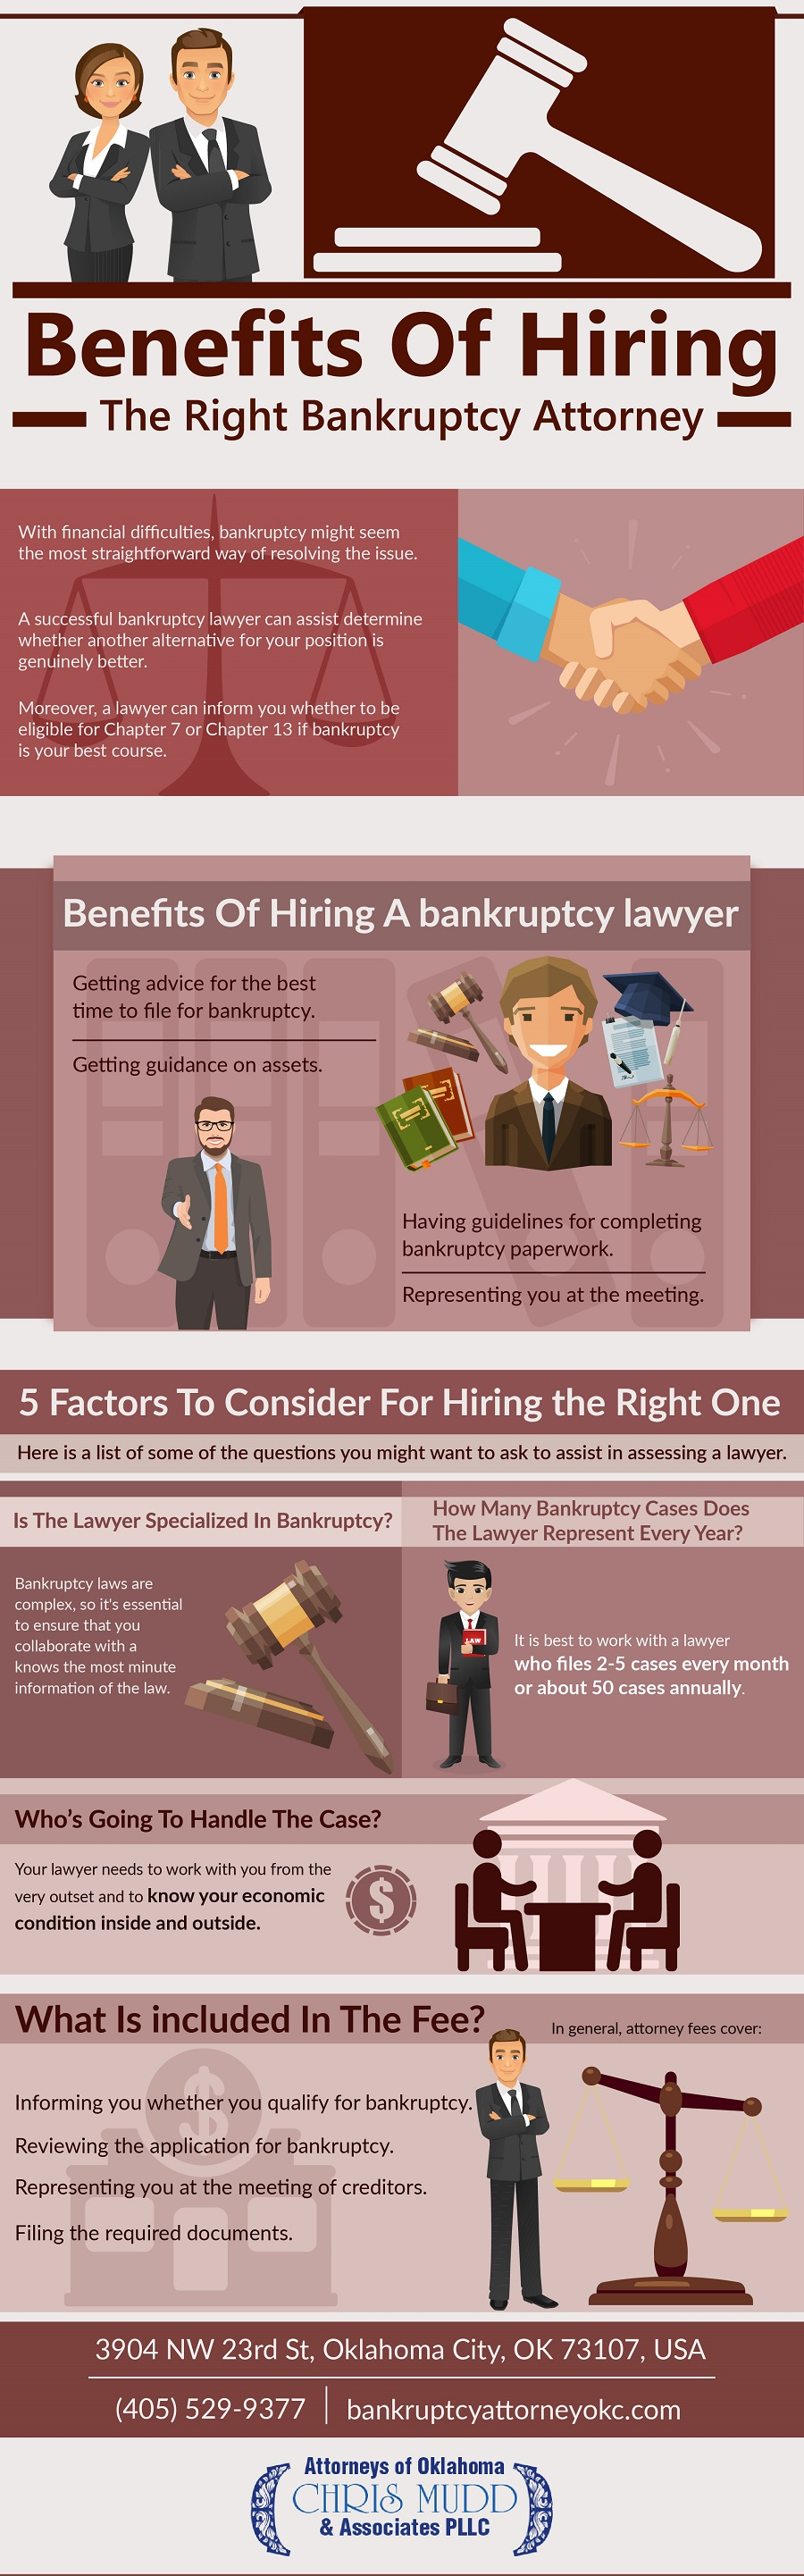 Benefits Of Hiring The Right Bankruptcy Attorney